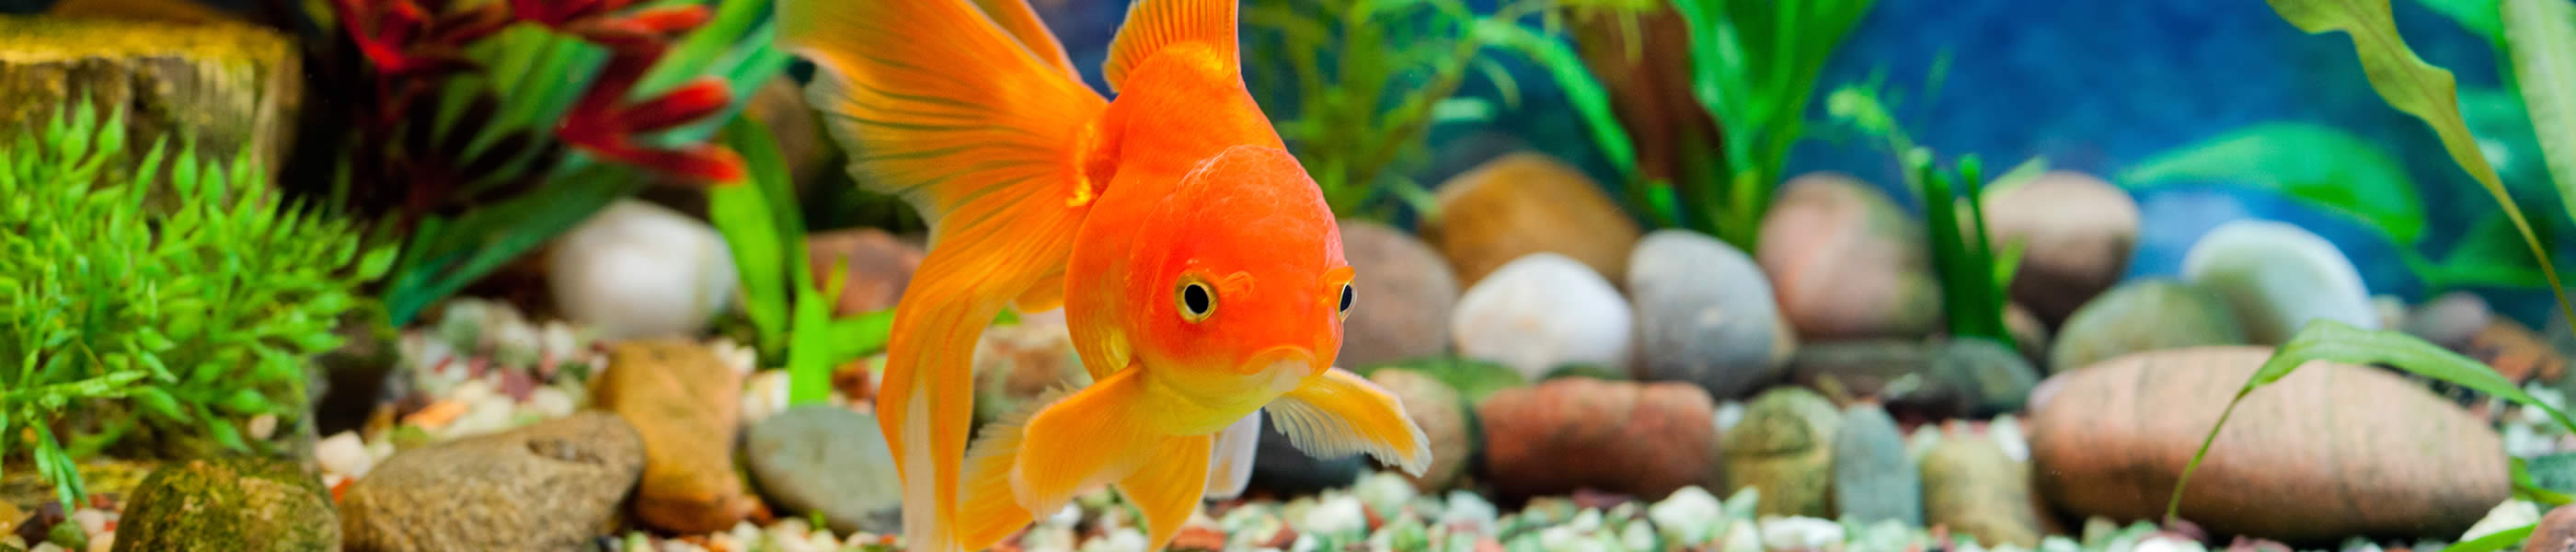 200 Most Popular Fish Names (100 Boy & 100 Girl) - Petset com